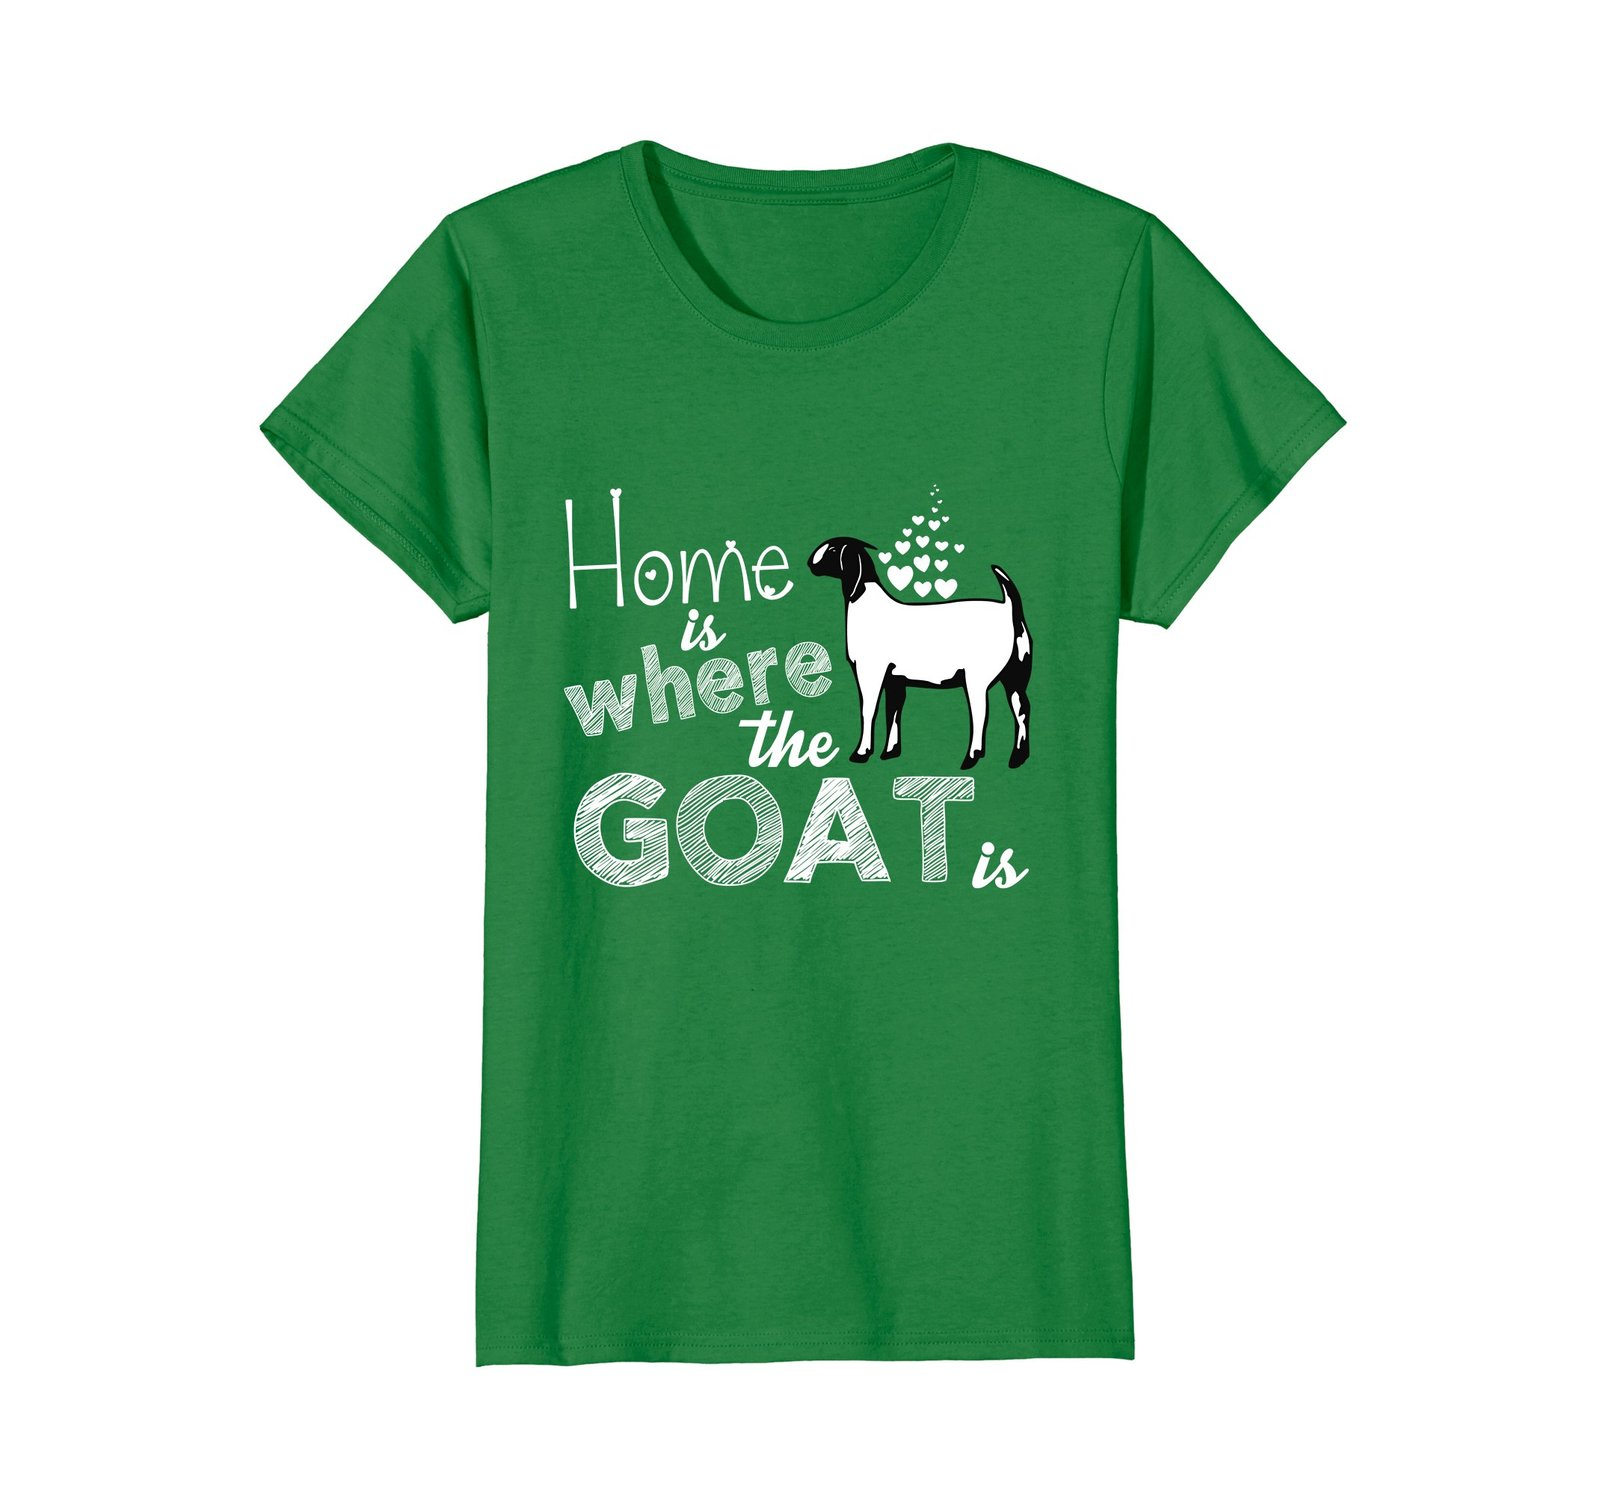 Home is where the Goat is beautyful t-shirt